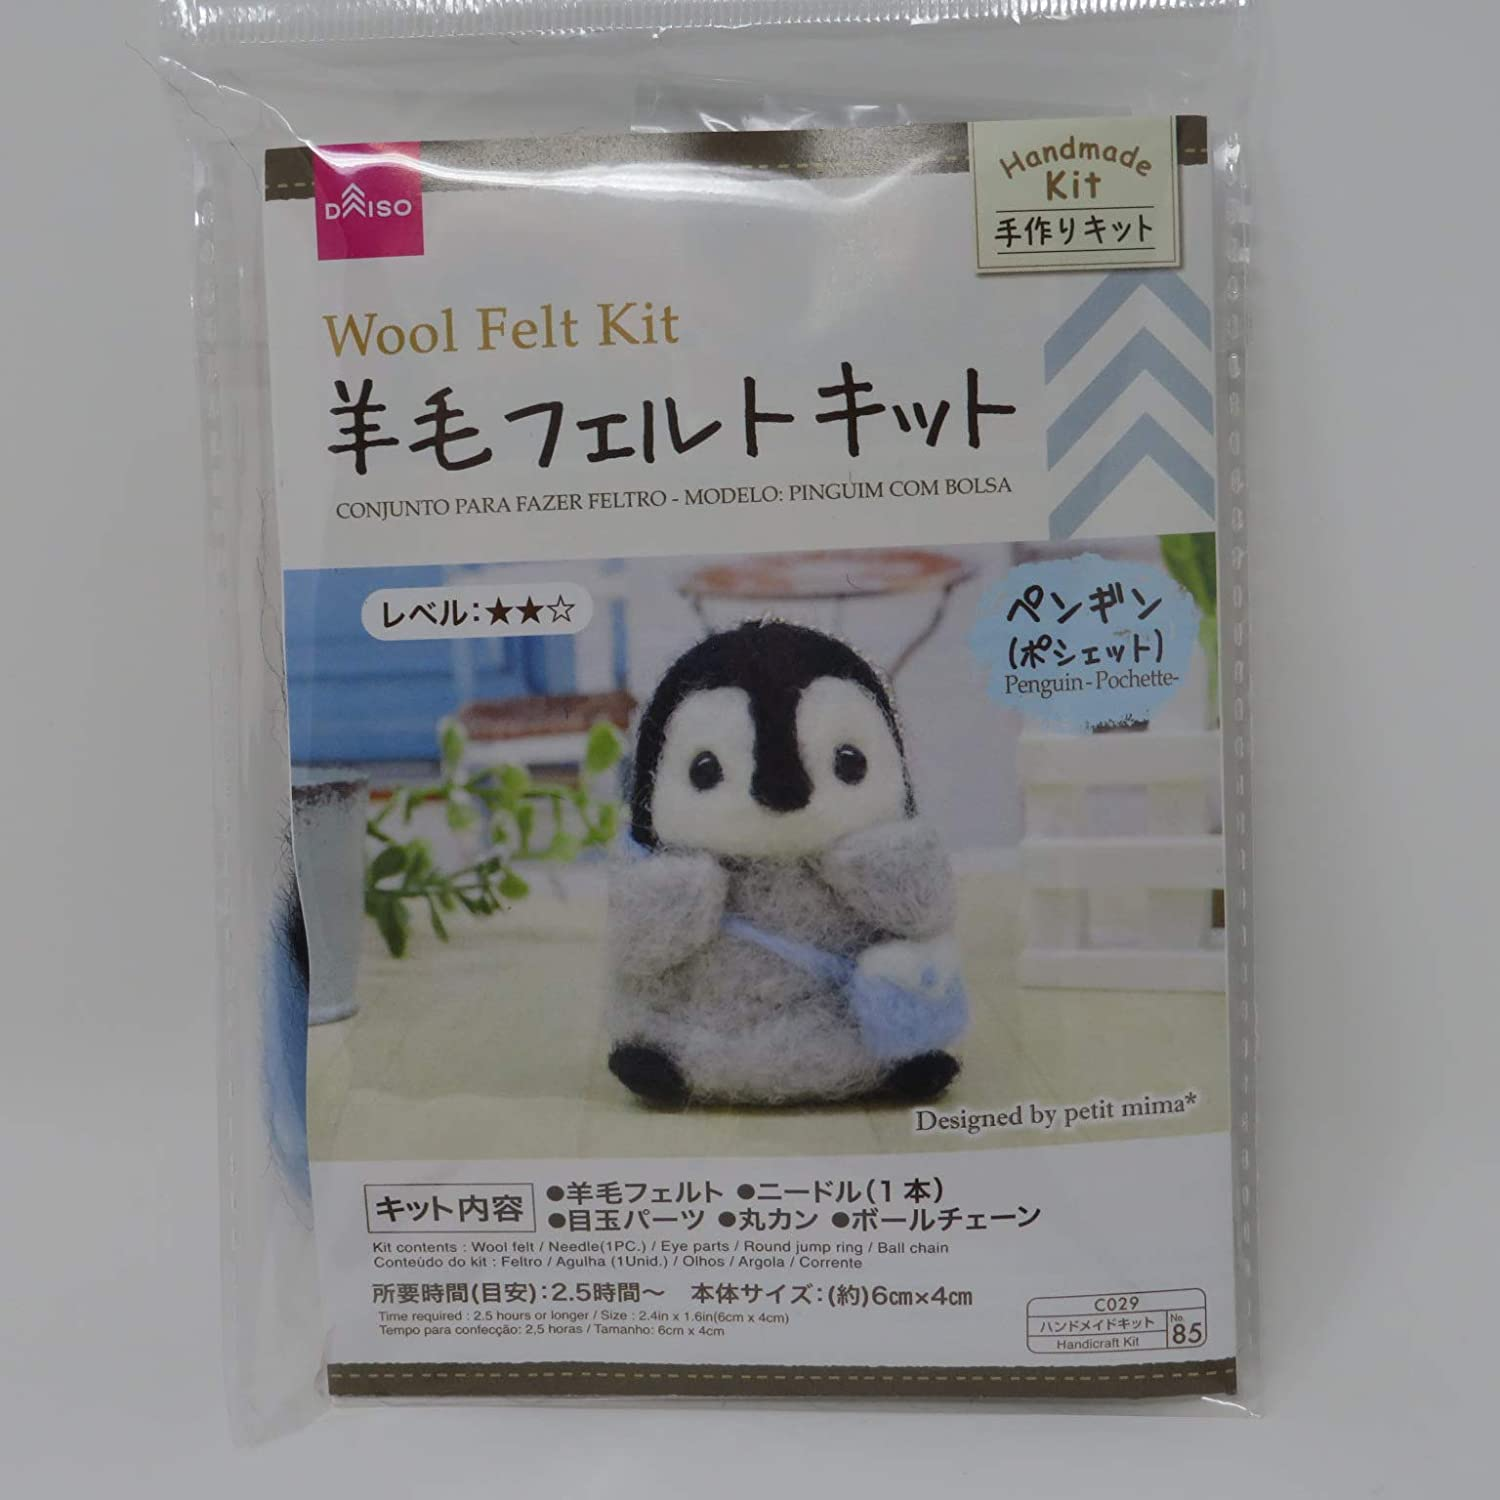 Penguin Pochette Needle Felting Animal Kit Wool Felt,Needle,Eye Parts,Round Jump Ring,Ball Chain